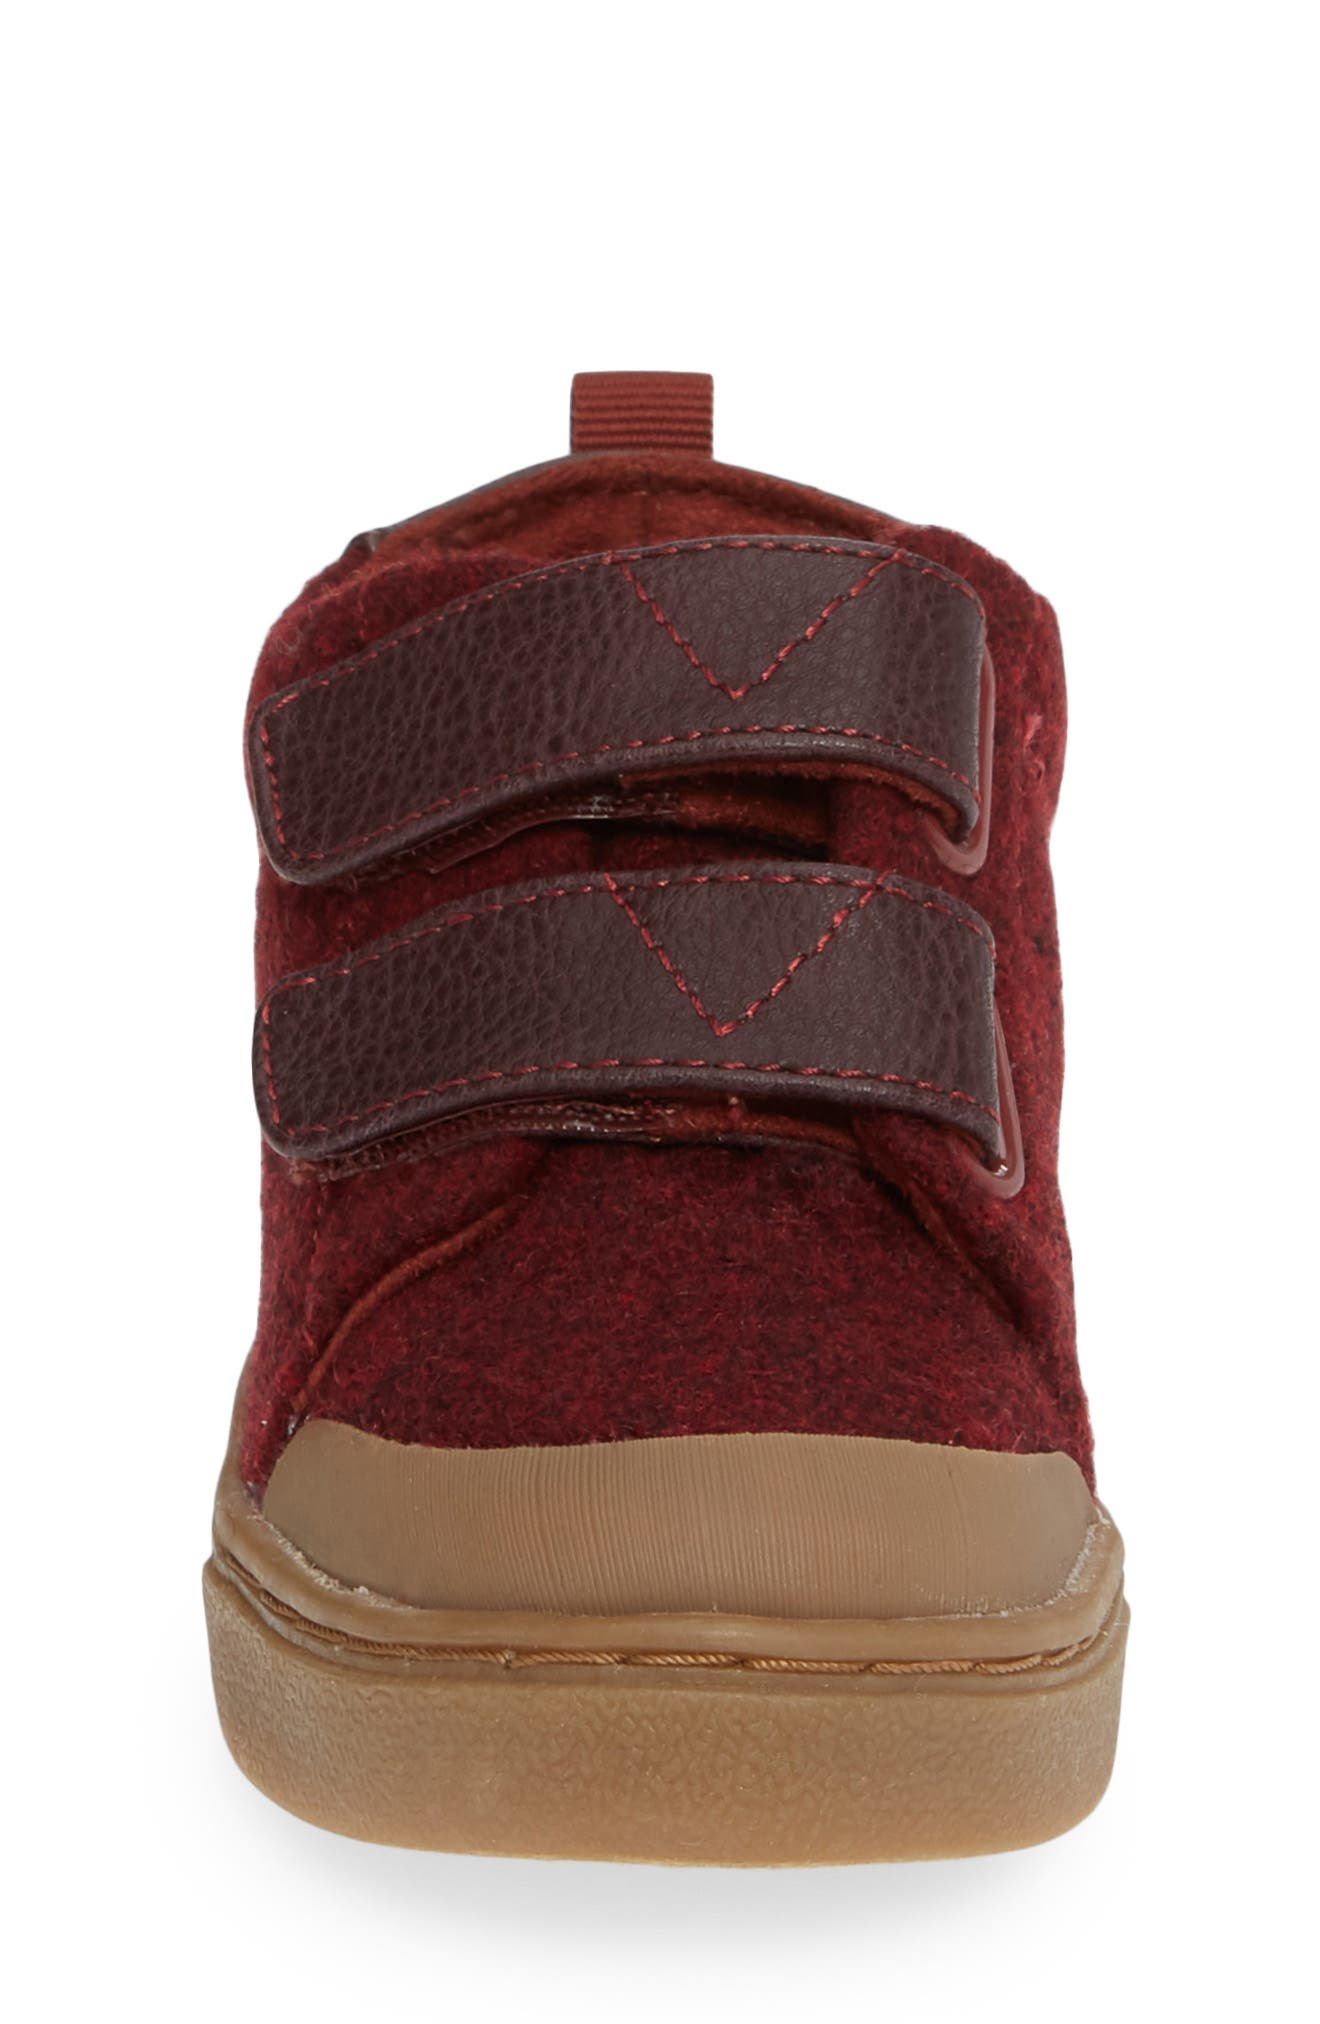 Lenny Mid Top Sneaker,                             Alternate thumbnail 20, color,